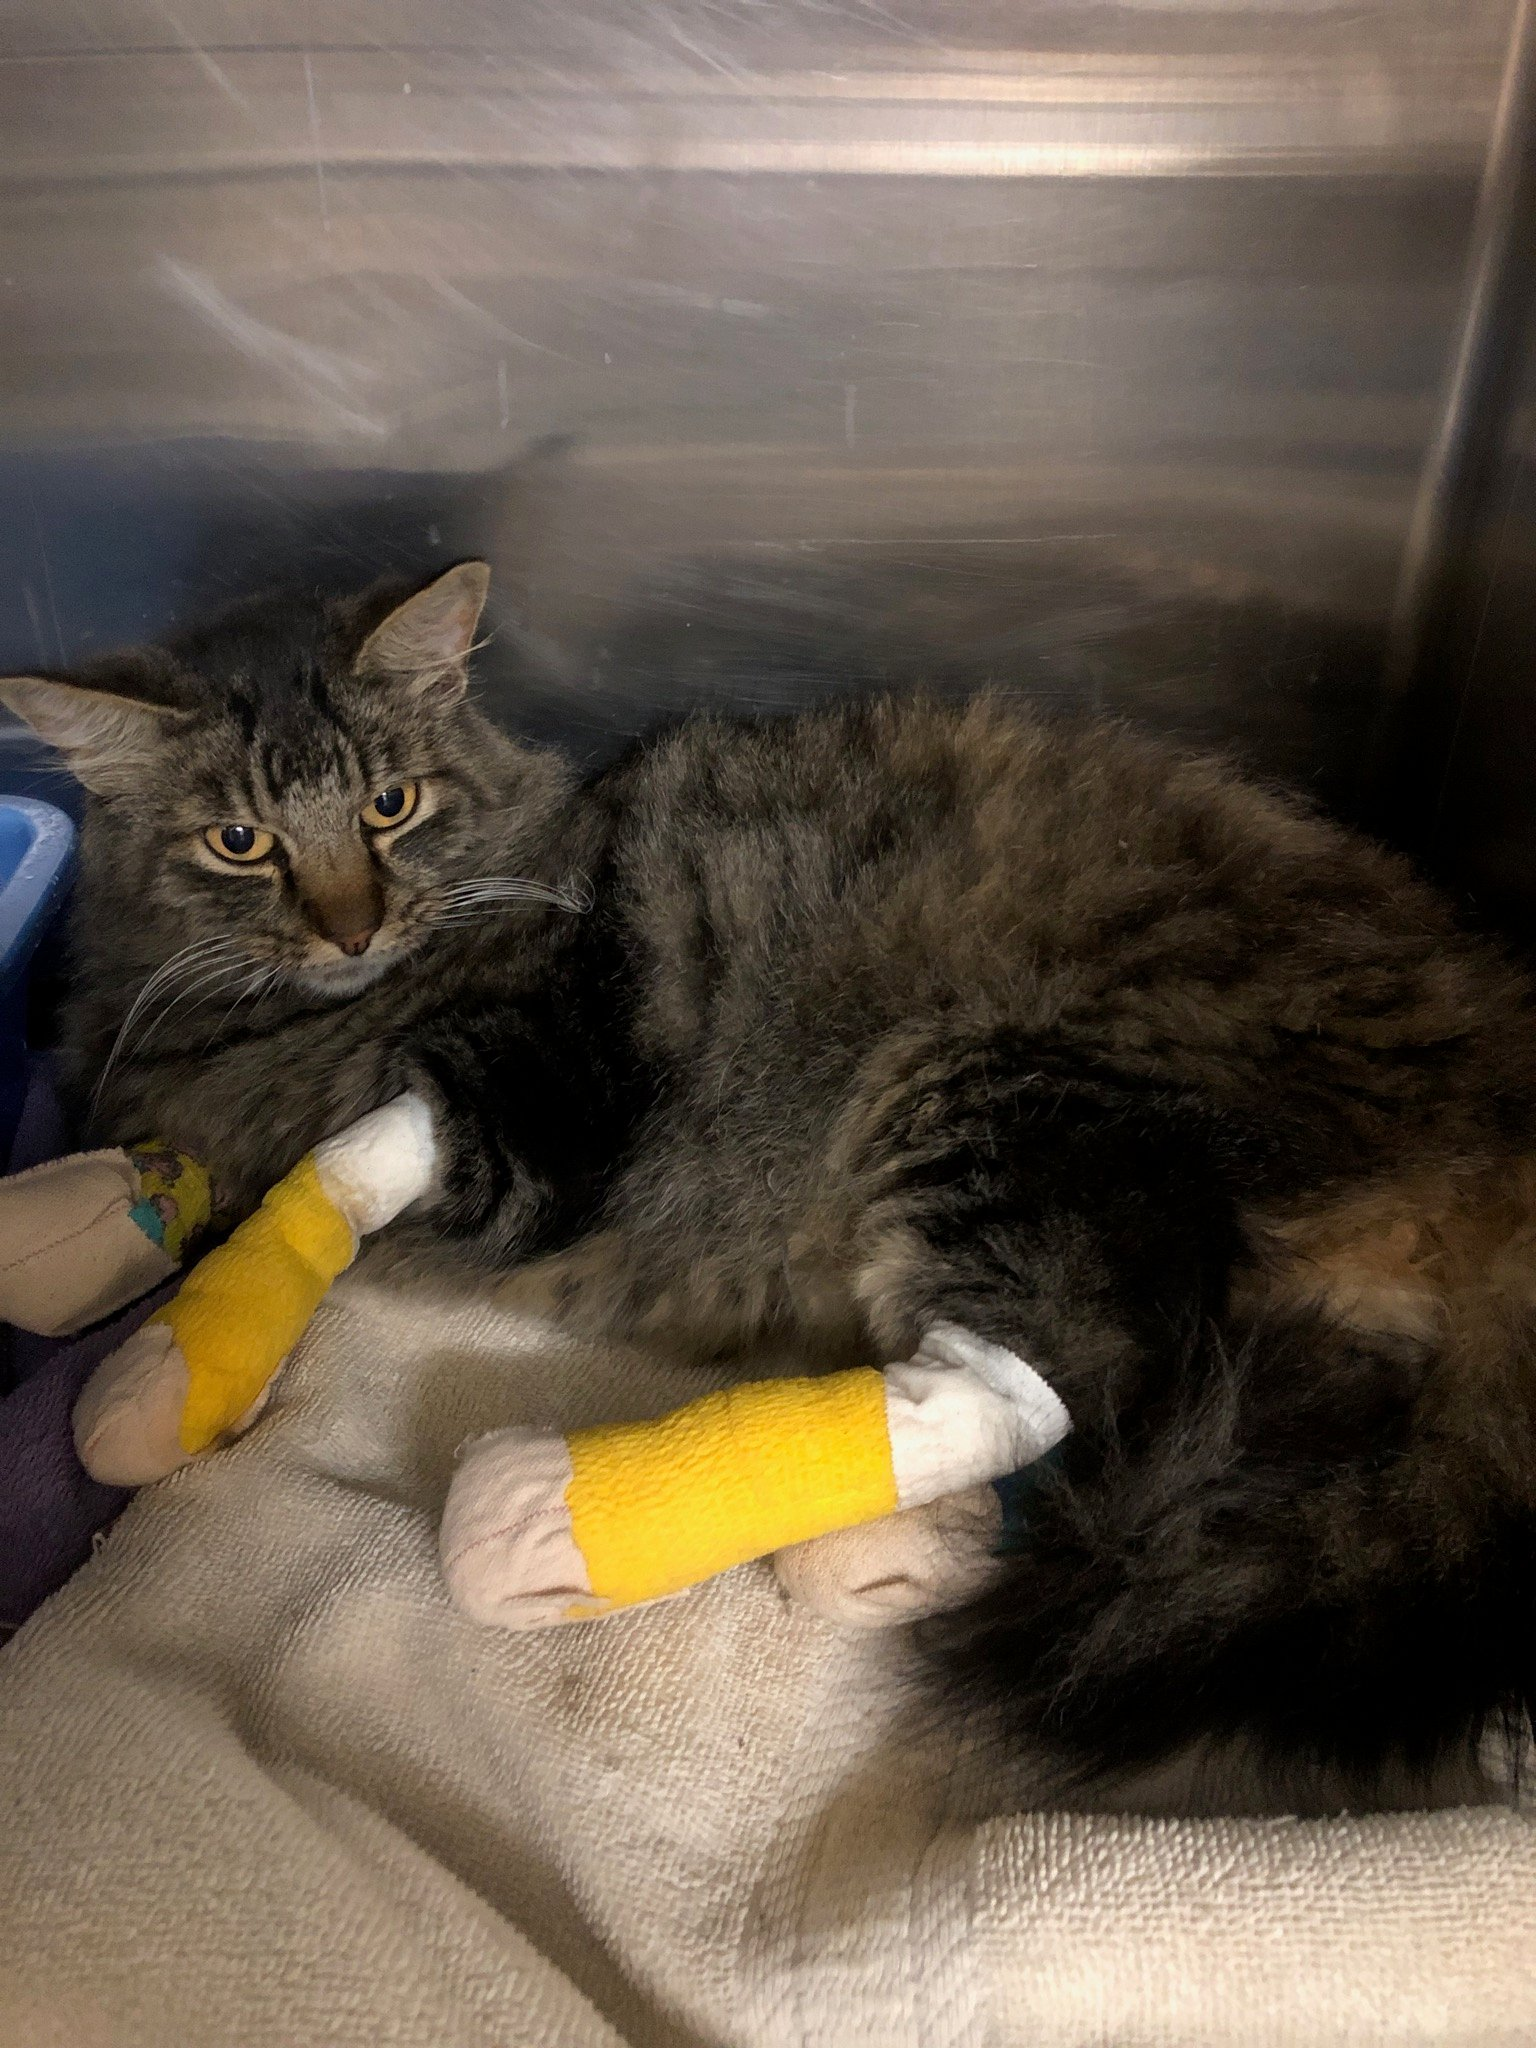 Cat-with-Wrapped-Paws-2_©Jameson-Humane_CA-Fires-2020